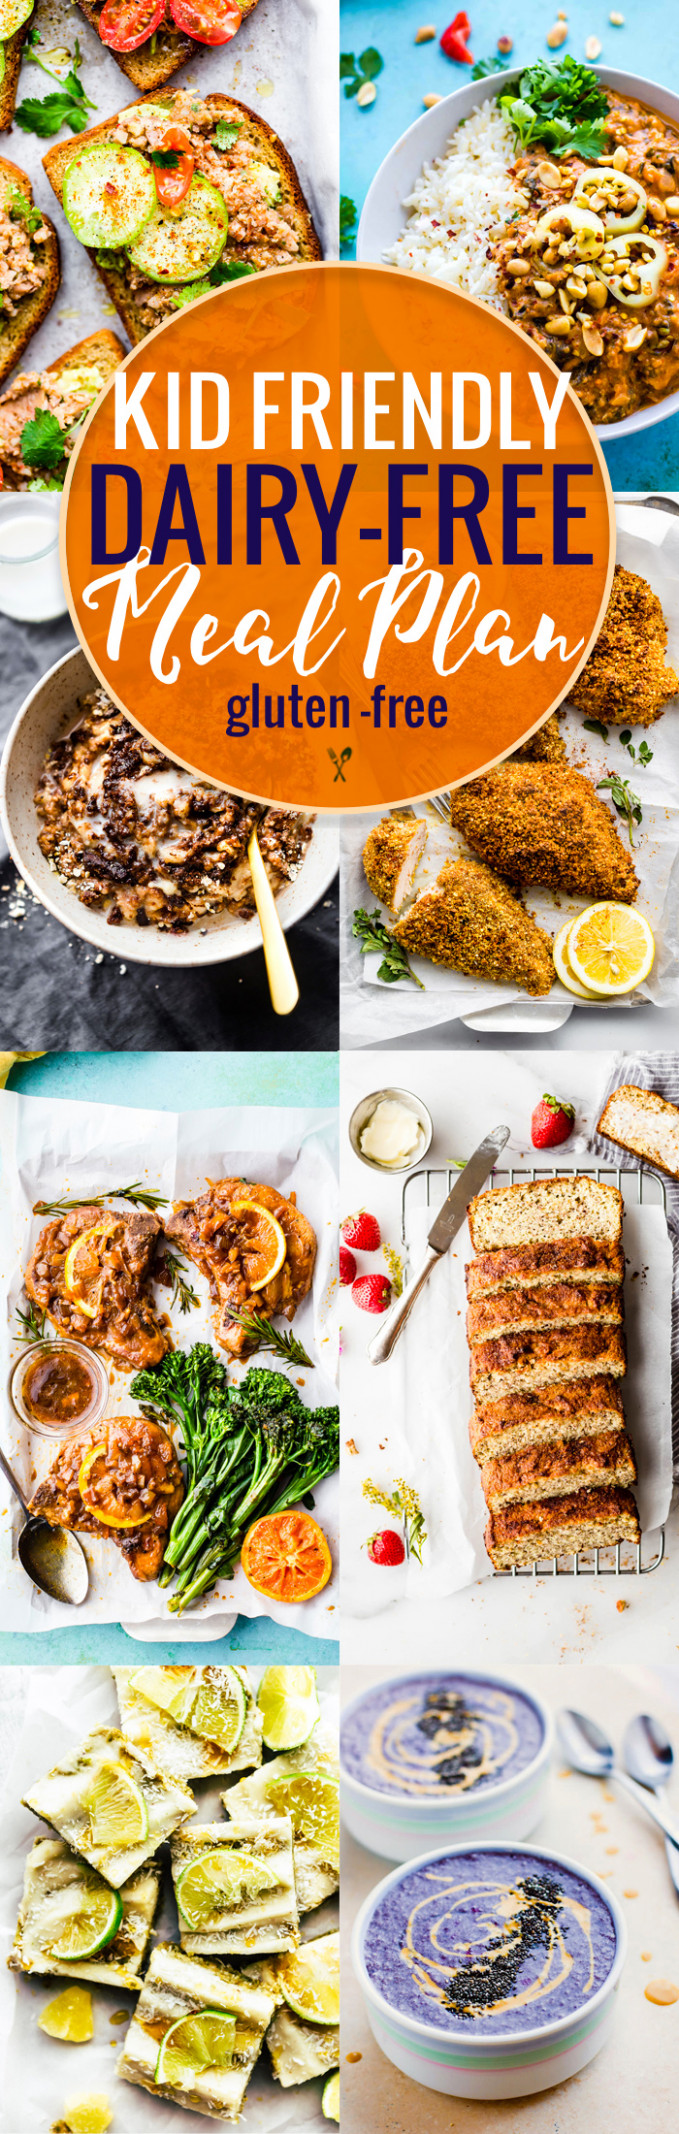 Kid Friendly Dairy Free Meal Plan | Cotter Crunch - Gluten ..